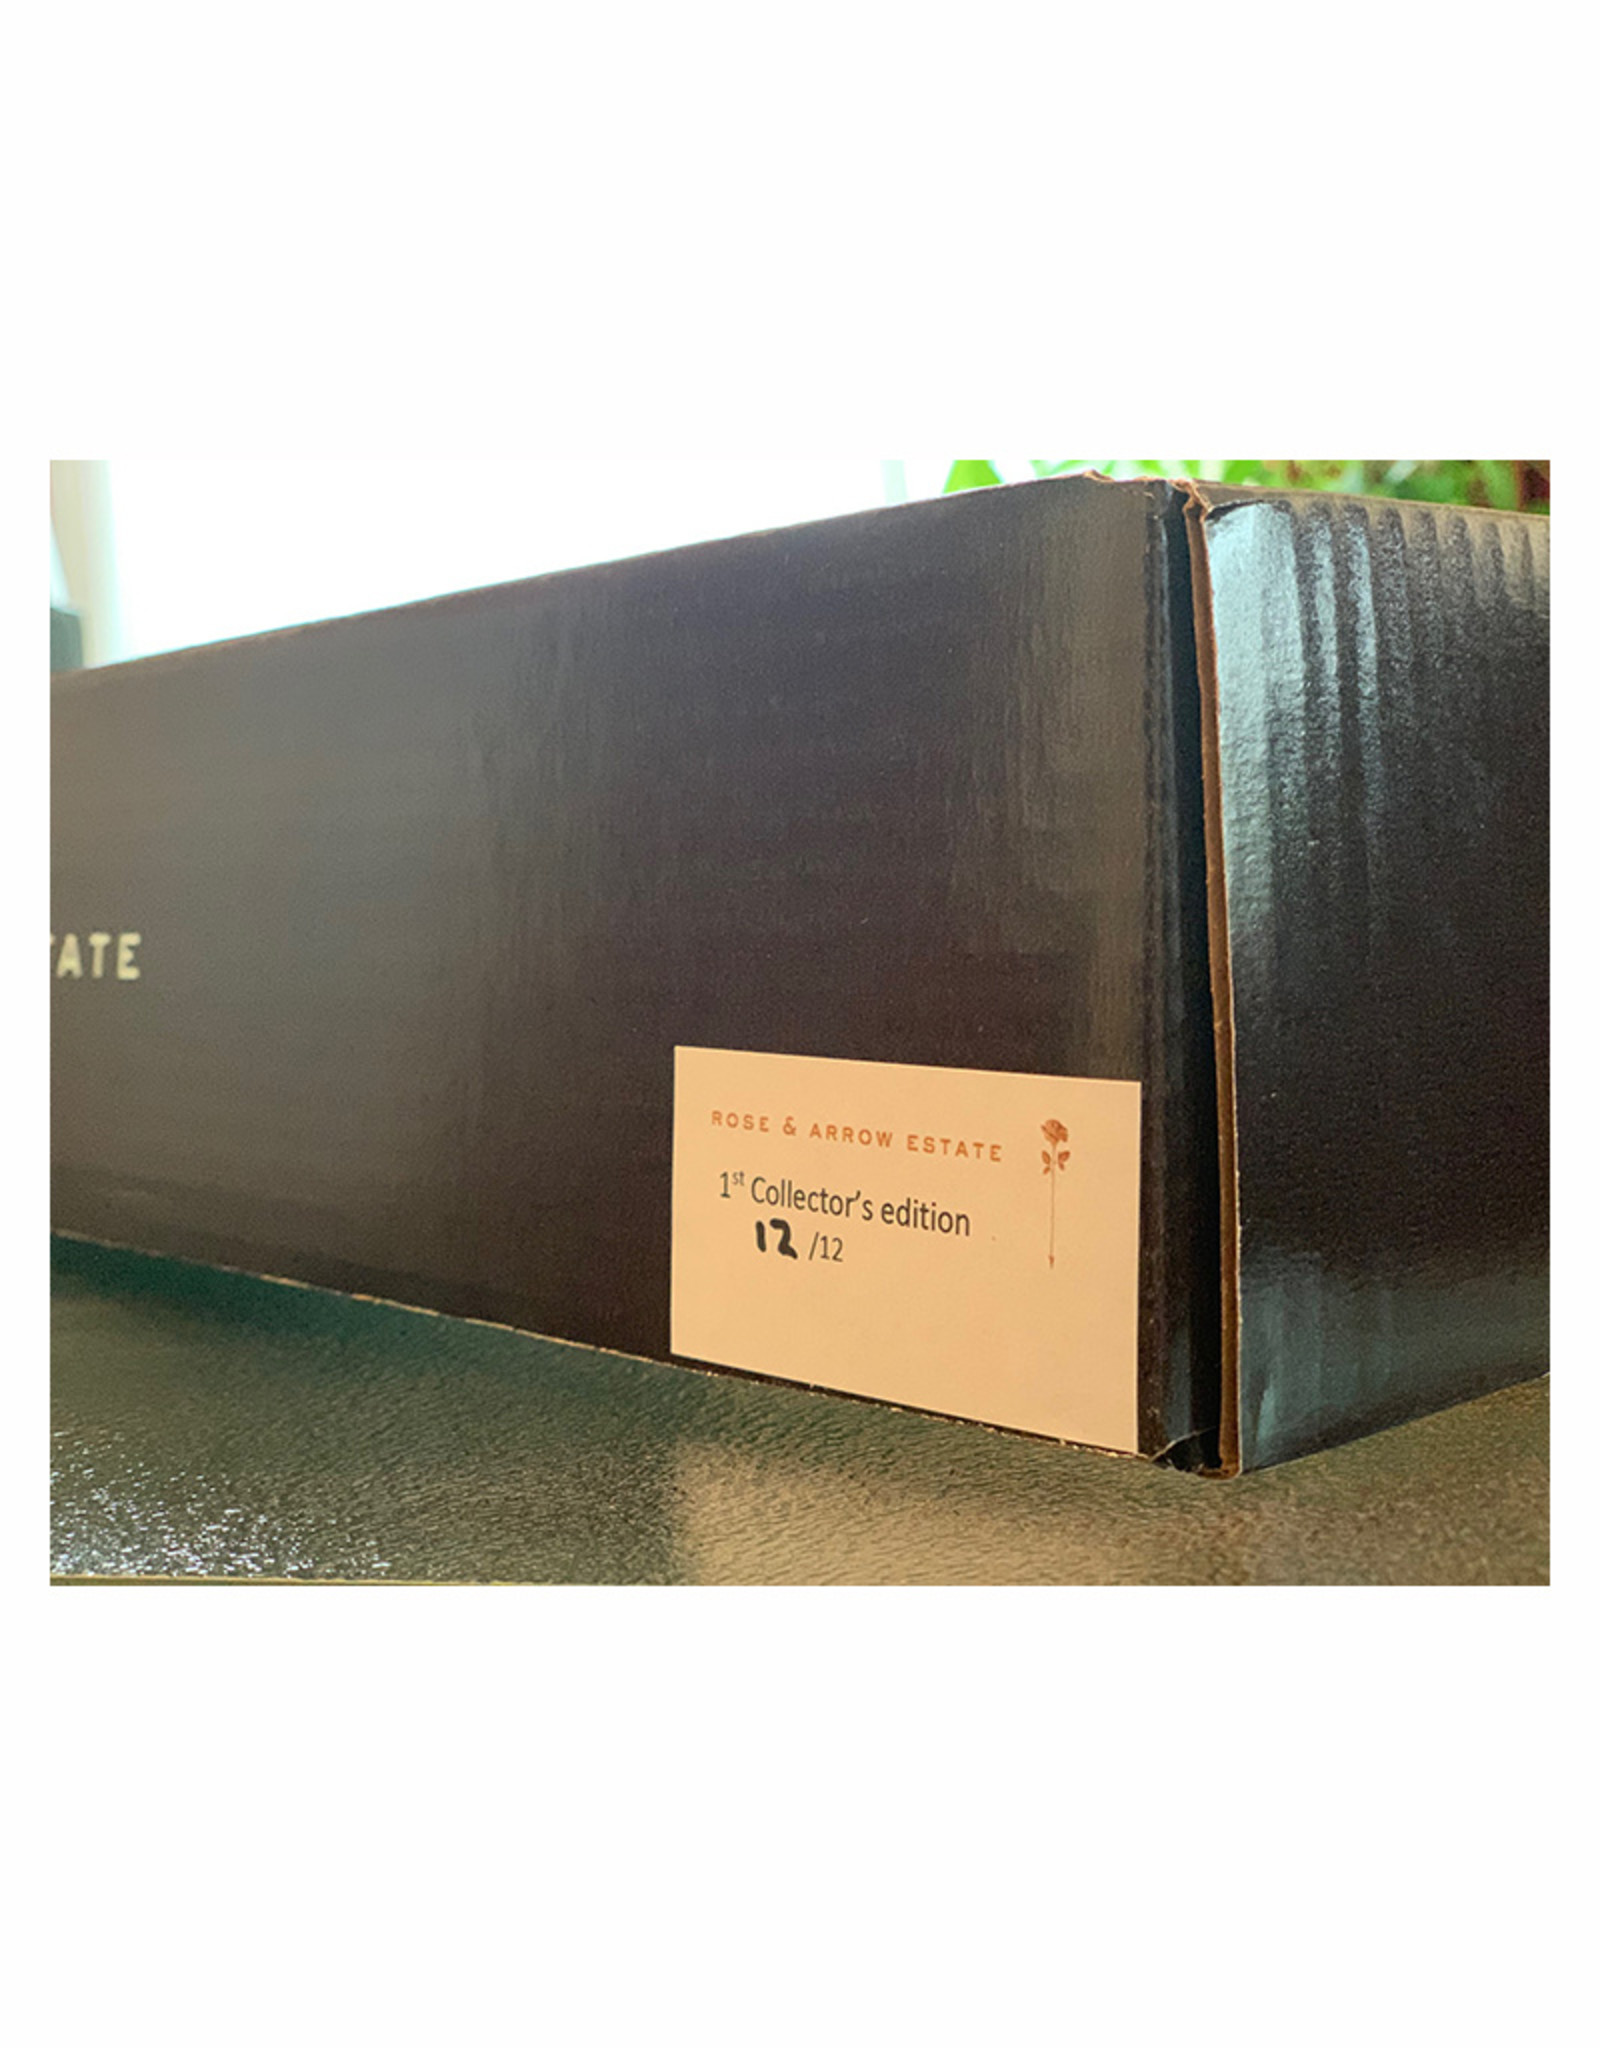 Rose and Arrow Estate - 1st  Edition Limited Collector's box